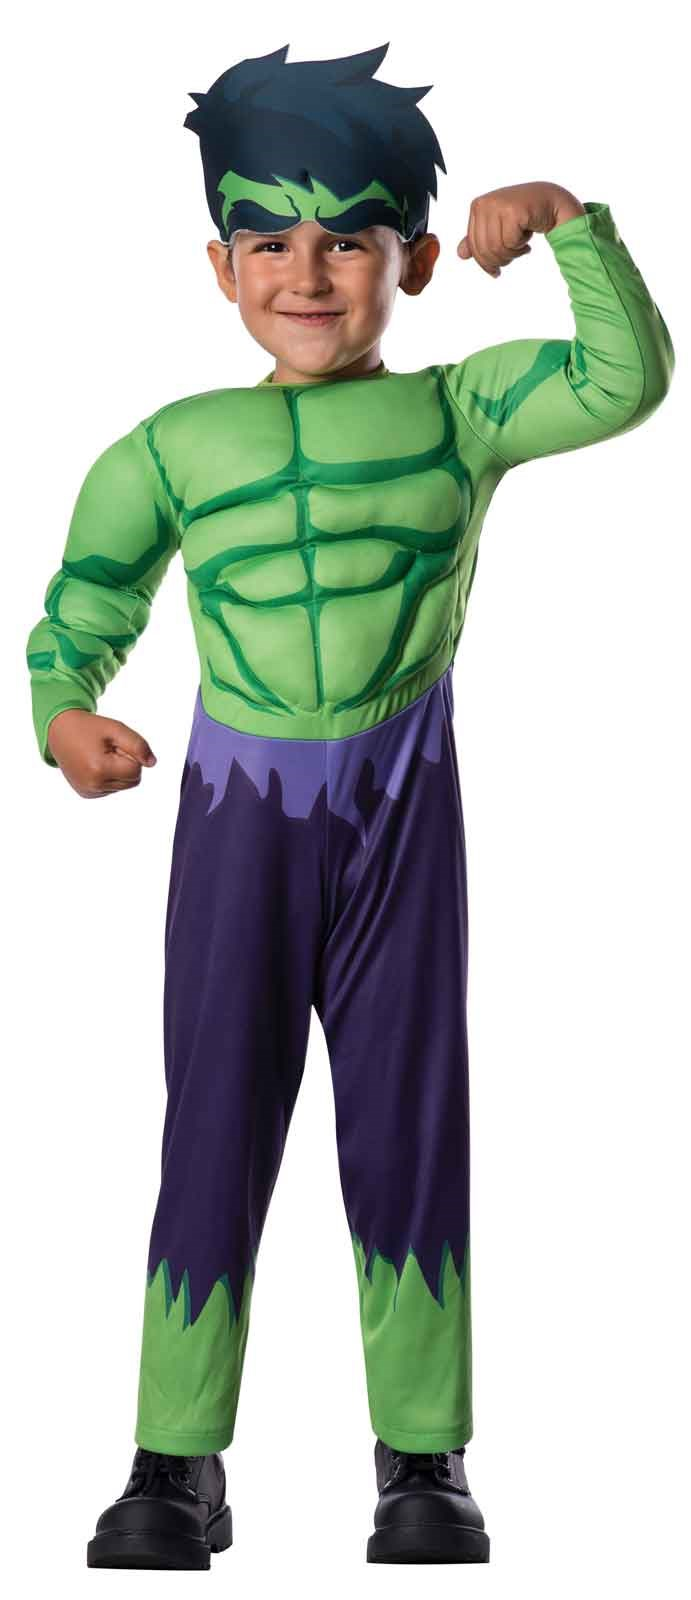 Avengers Assemble Hulk Toddler Boy Costume Toddler (2-4)